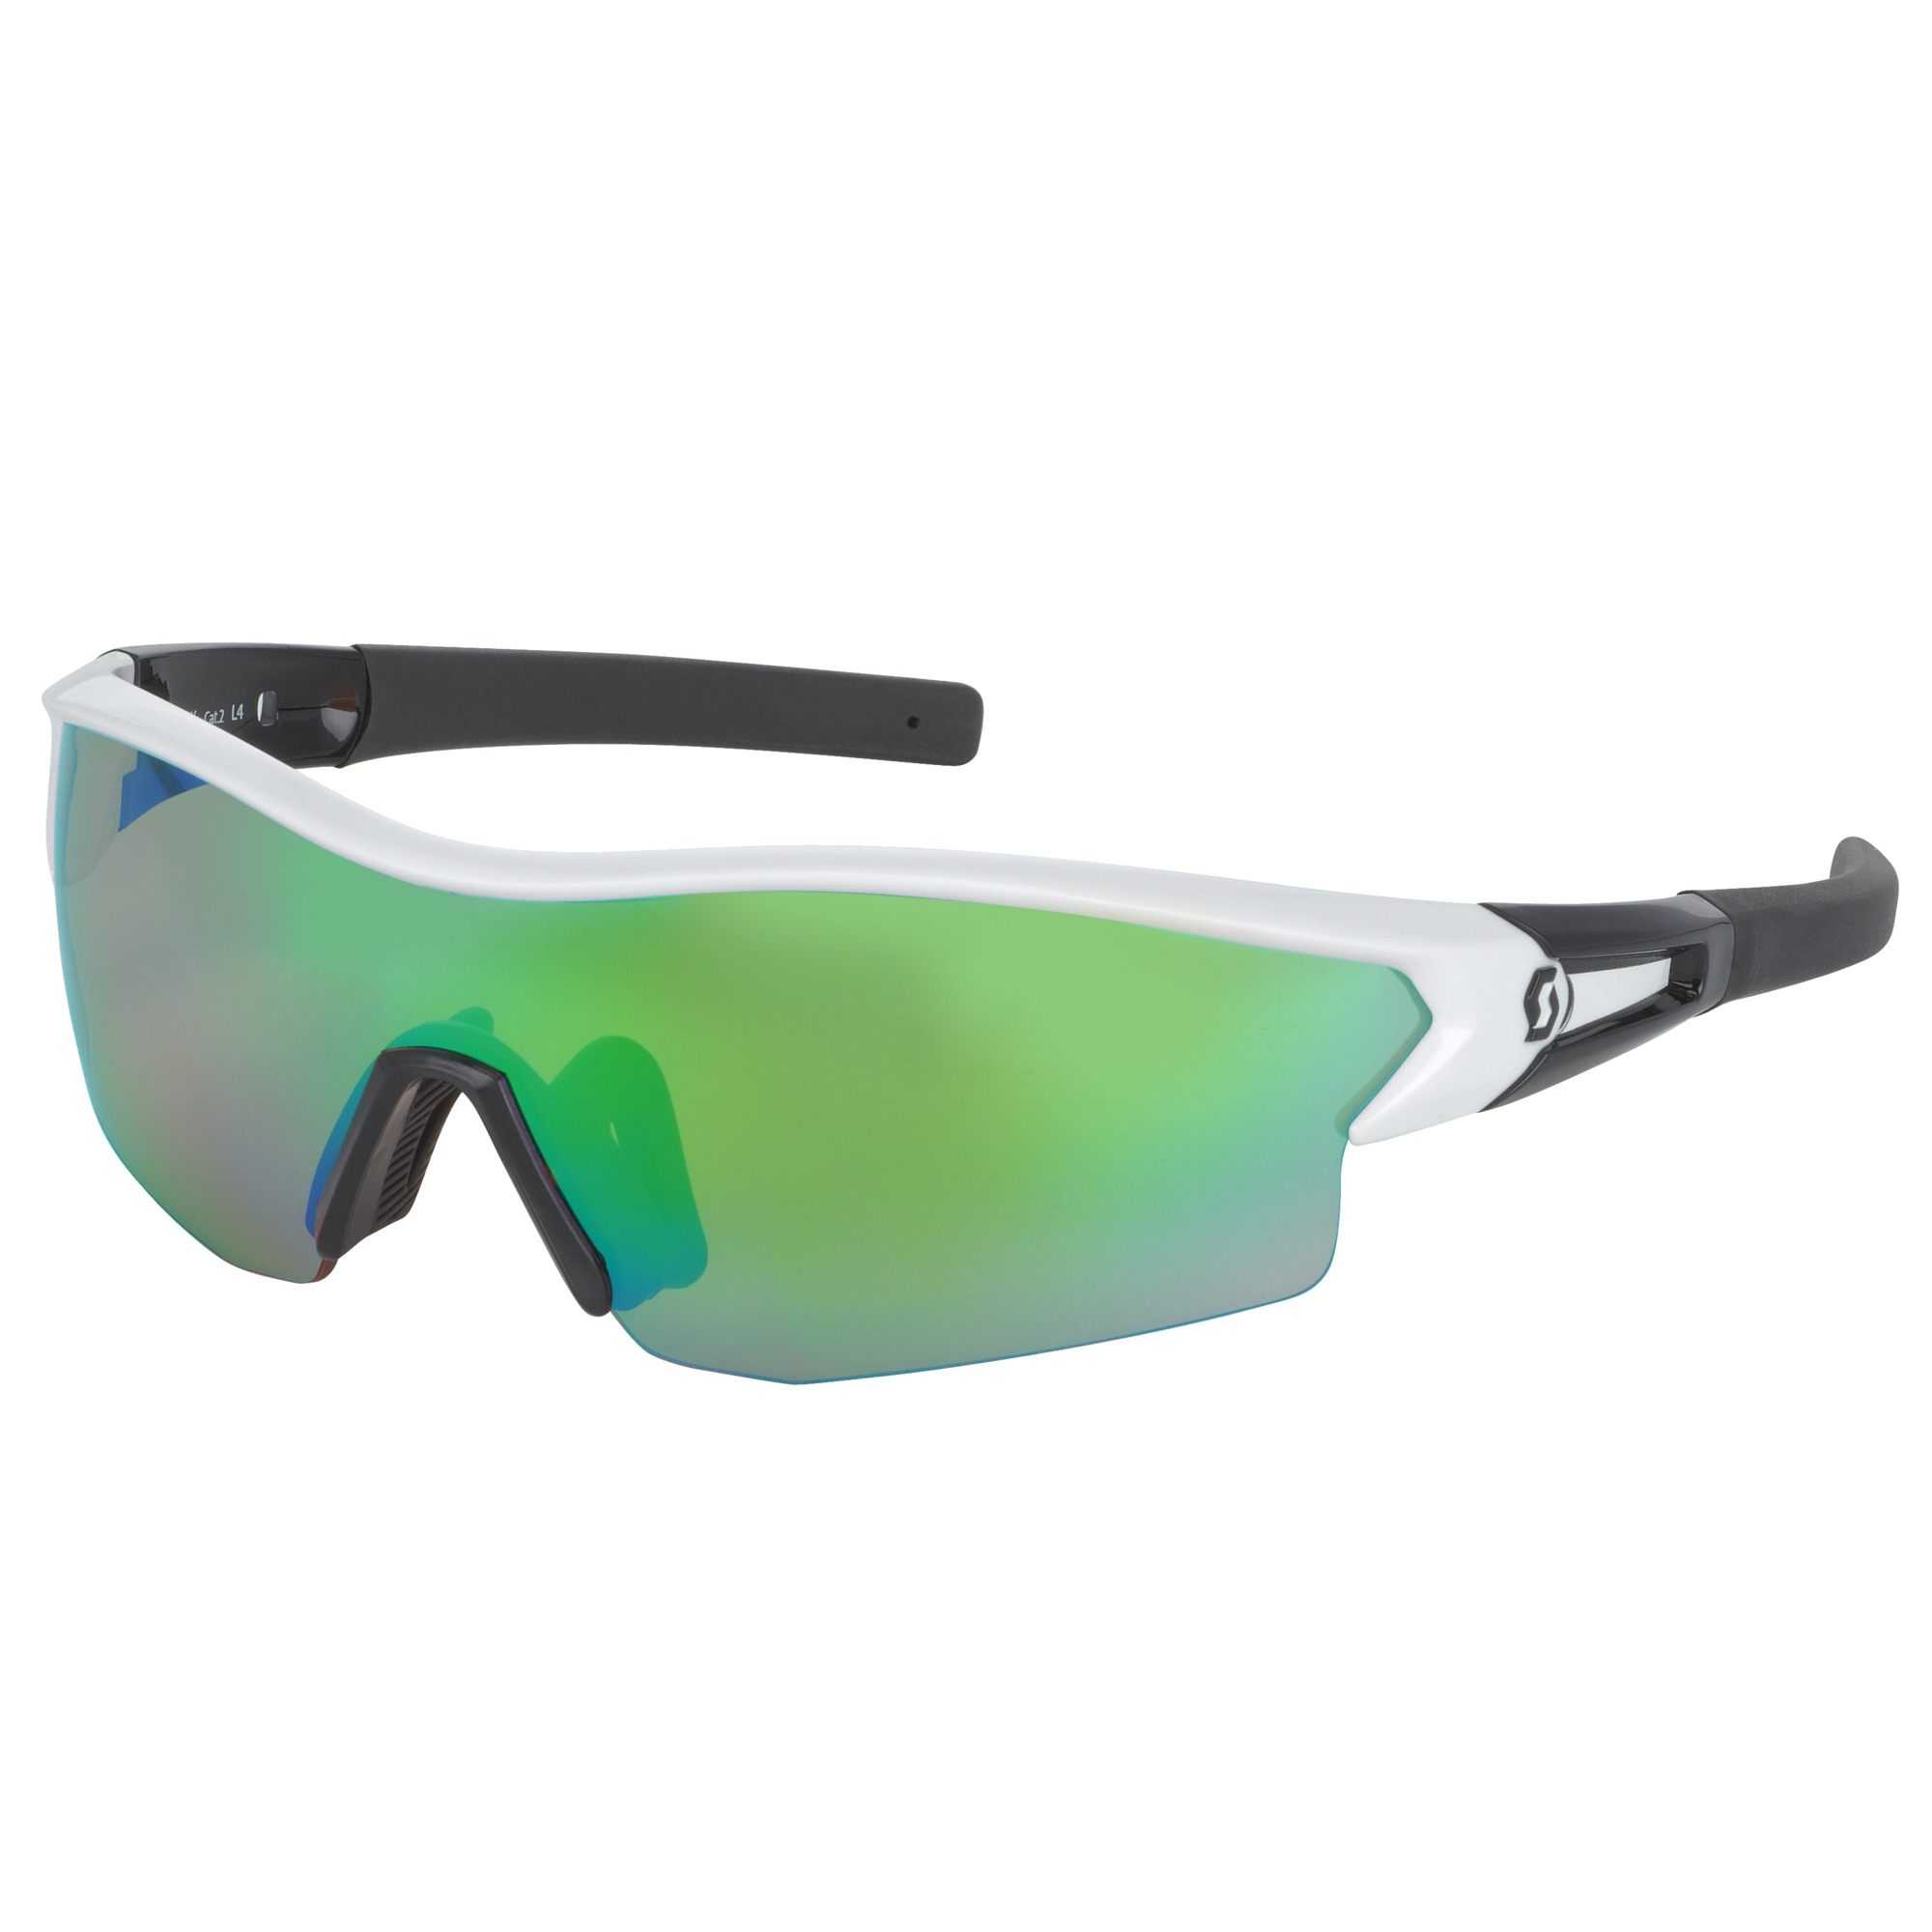 OCCHIALE SPORTIVO SCOTT LEAP SUNGLASSES 238999 WHITE GLOSSY BLACK GREEN.jpg